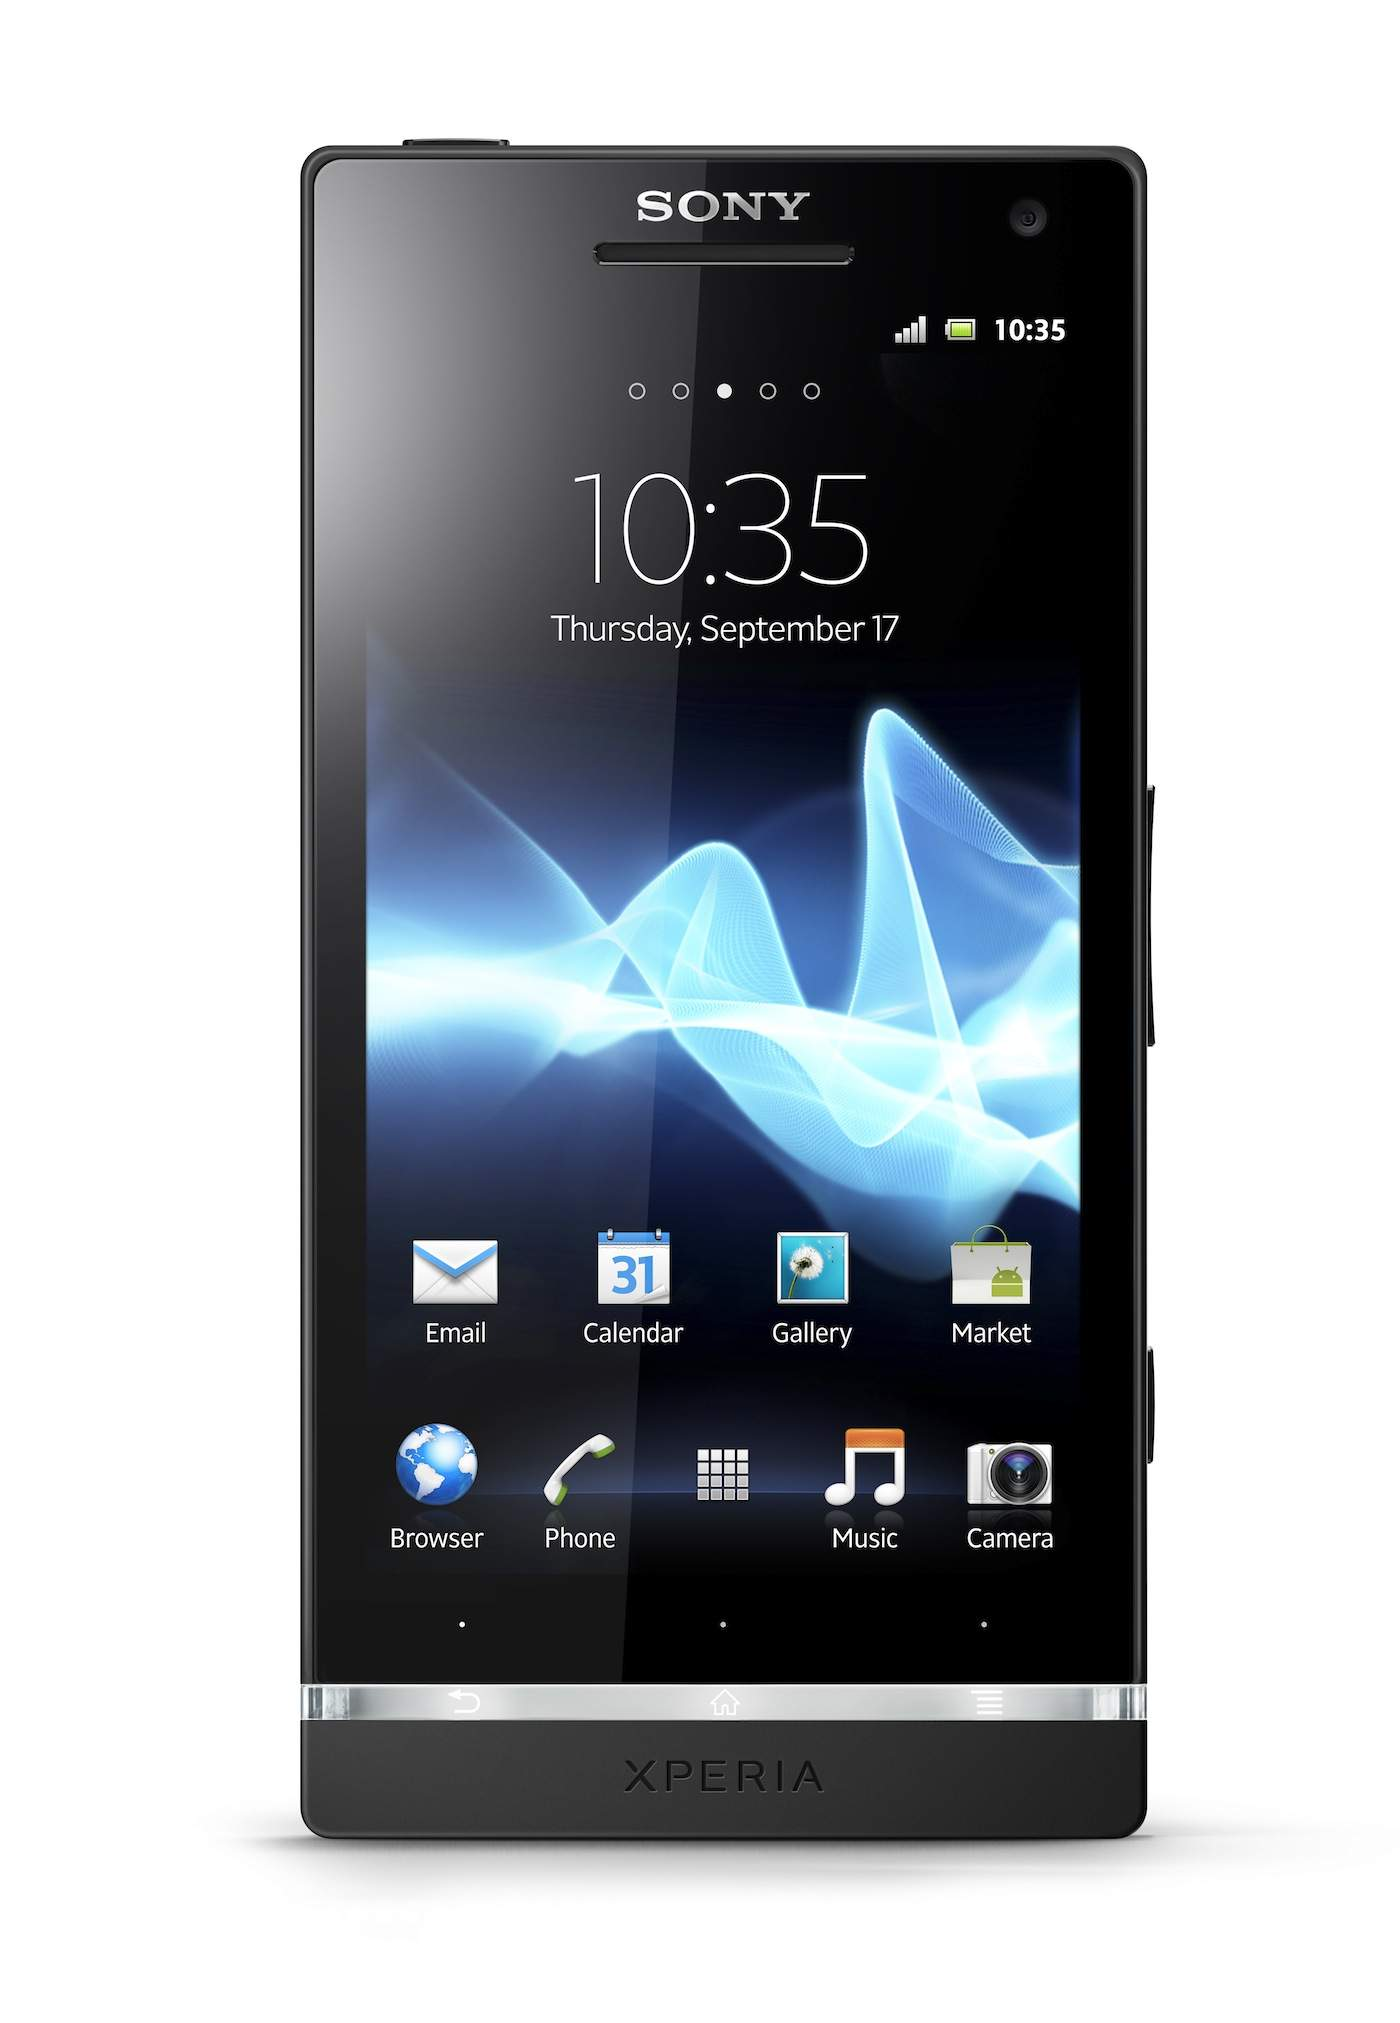 Sony Xperia S - Front